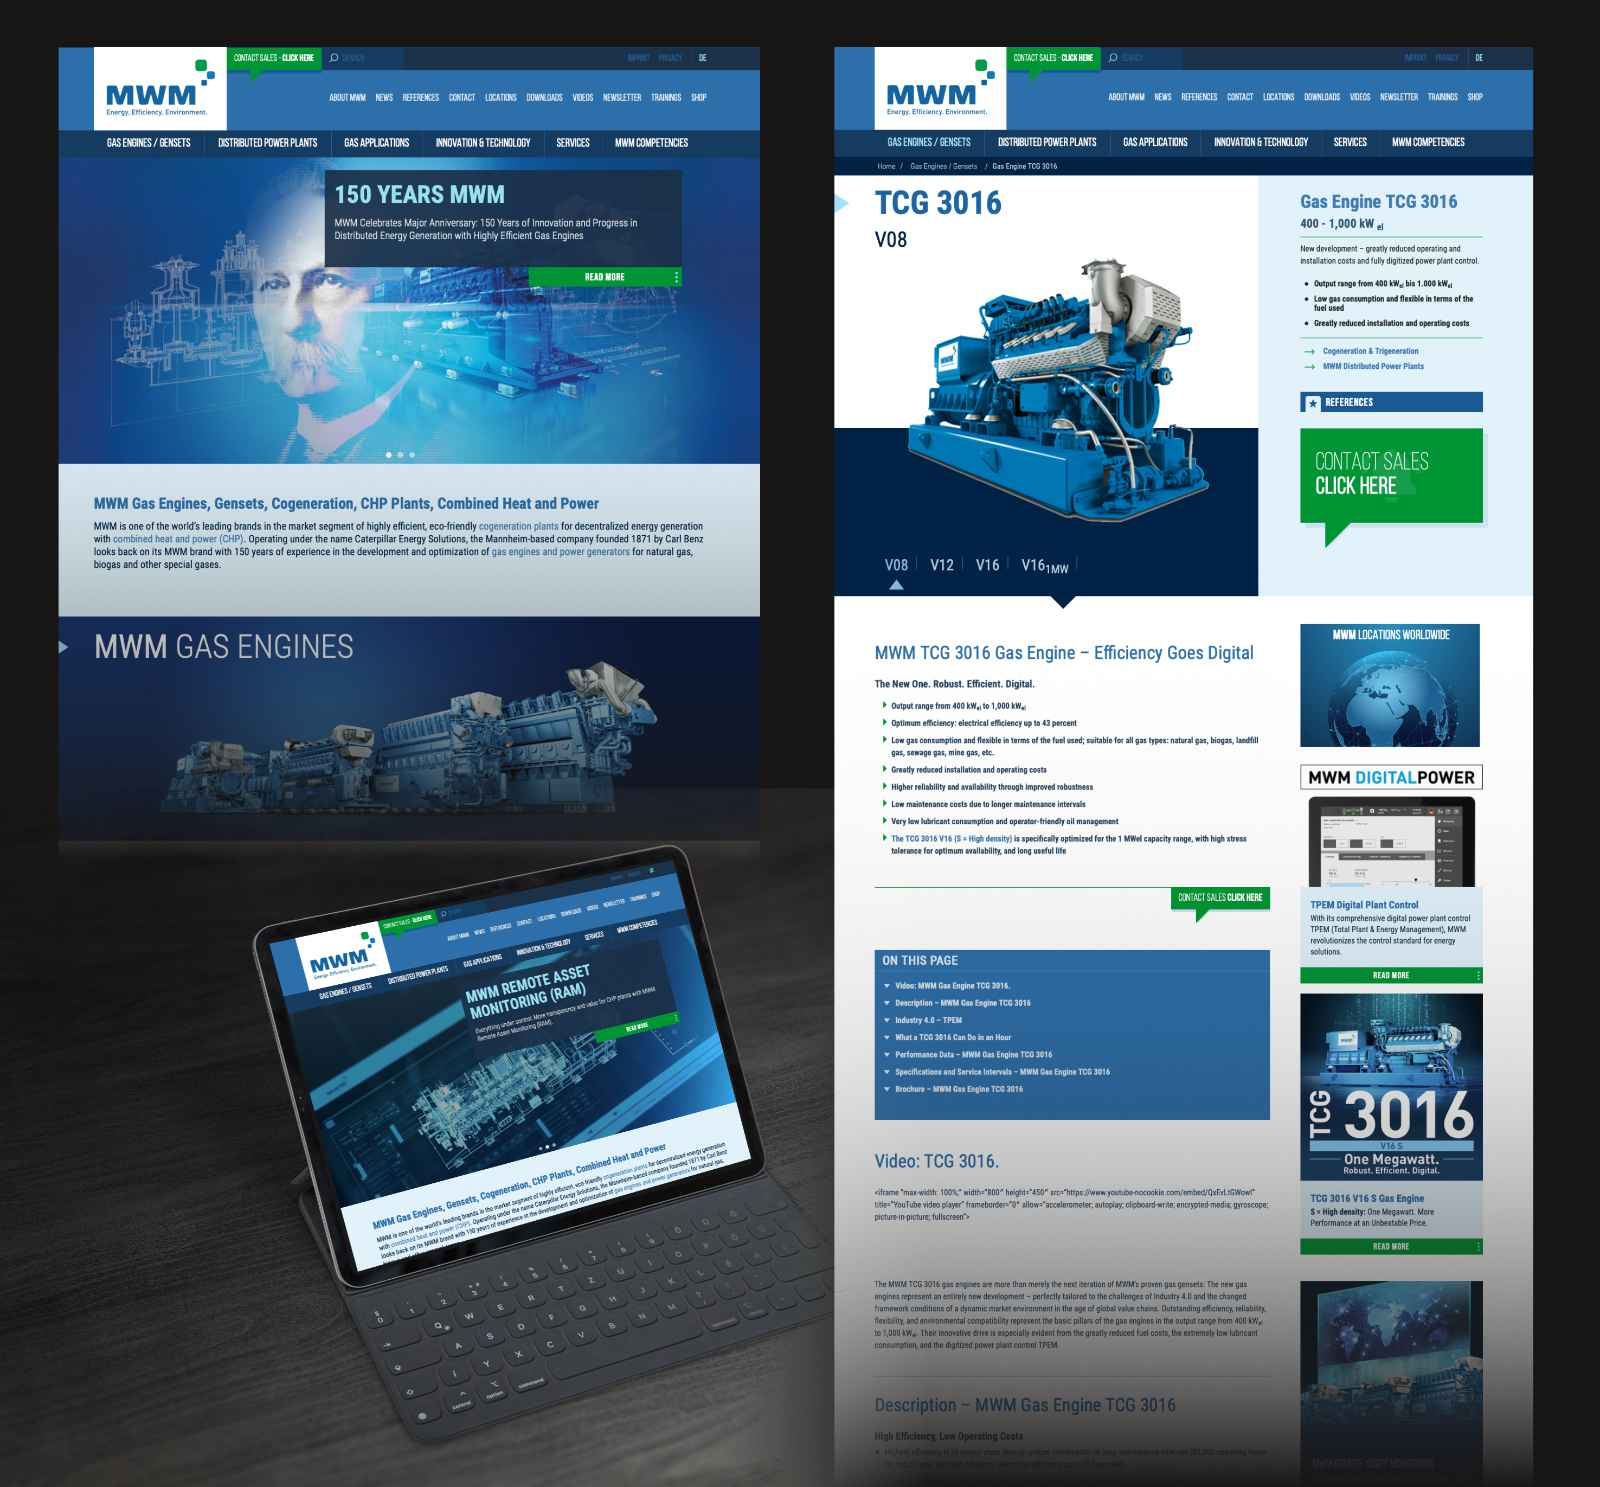 MWM Brand, MWM Gas Engines, New Website Look: Tradition, Innovation, and Continuity